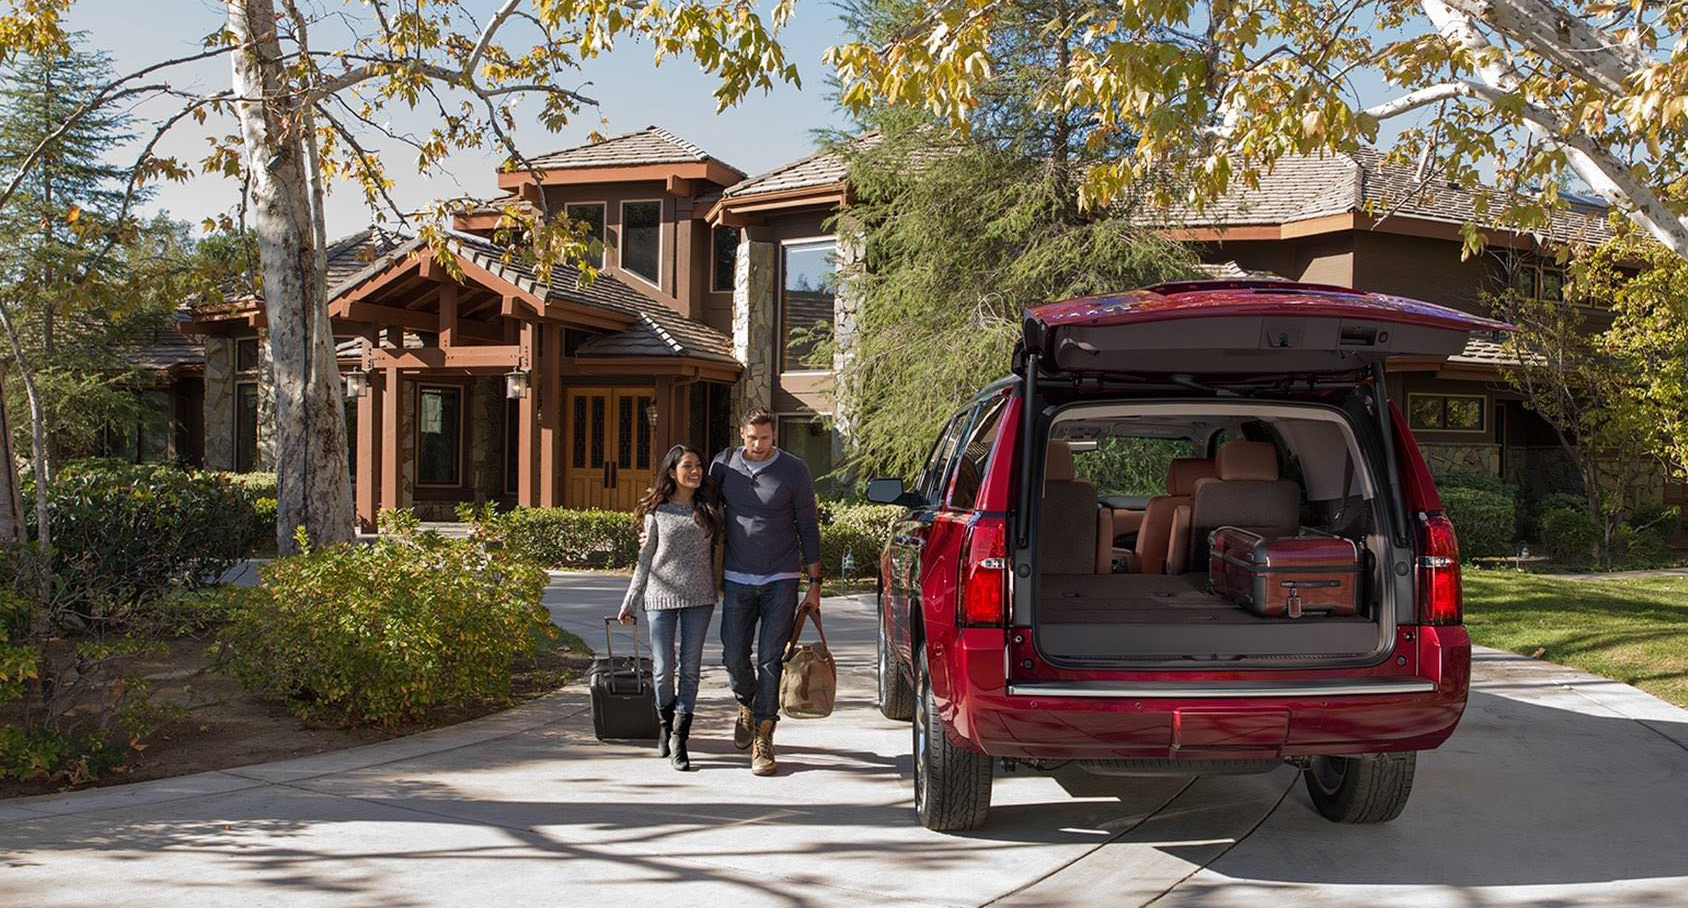 Valley Chevy - Man Buying New Chevrolet Vehicle: Tahoe Family SUV